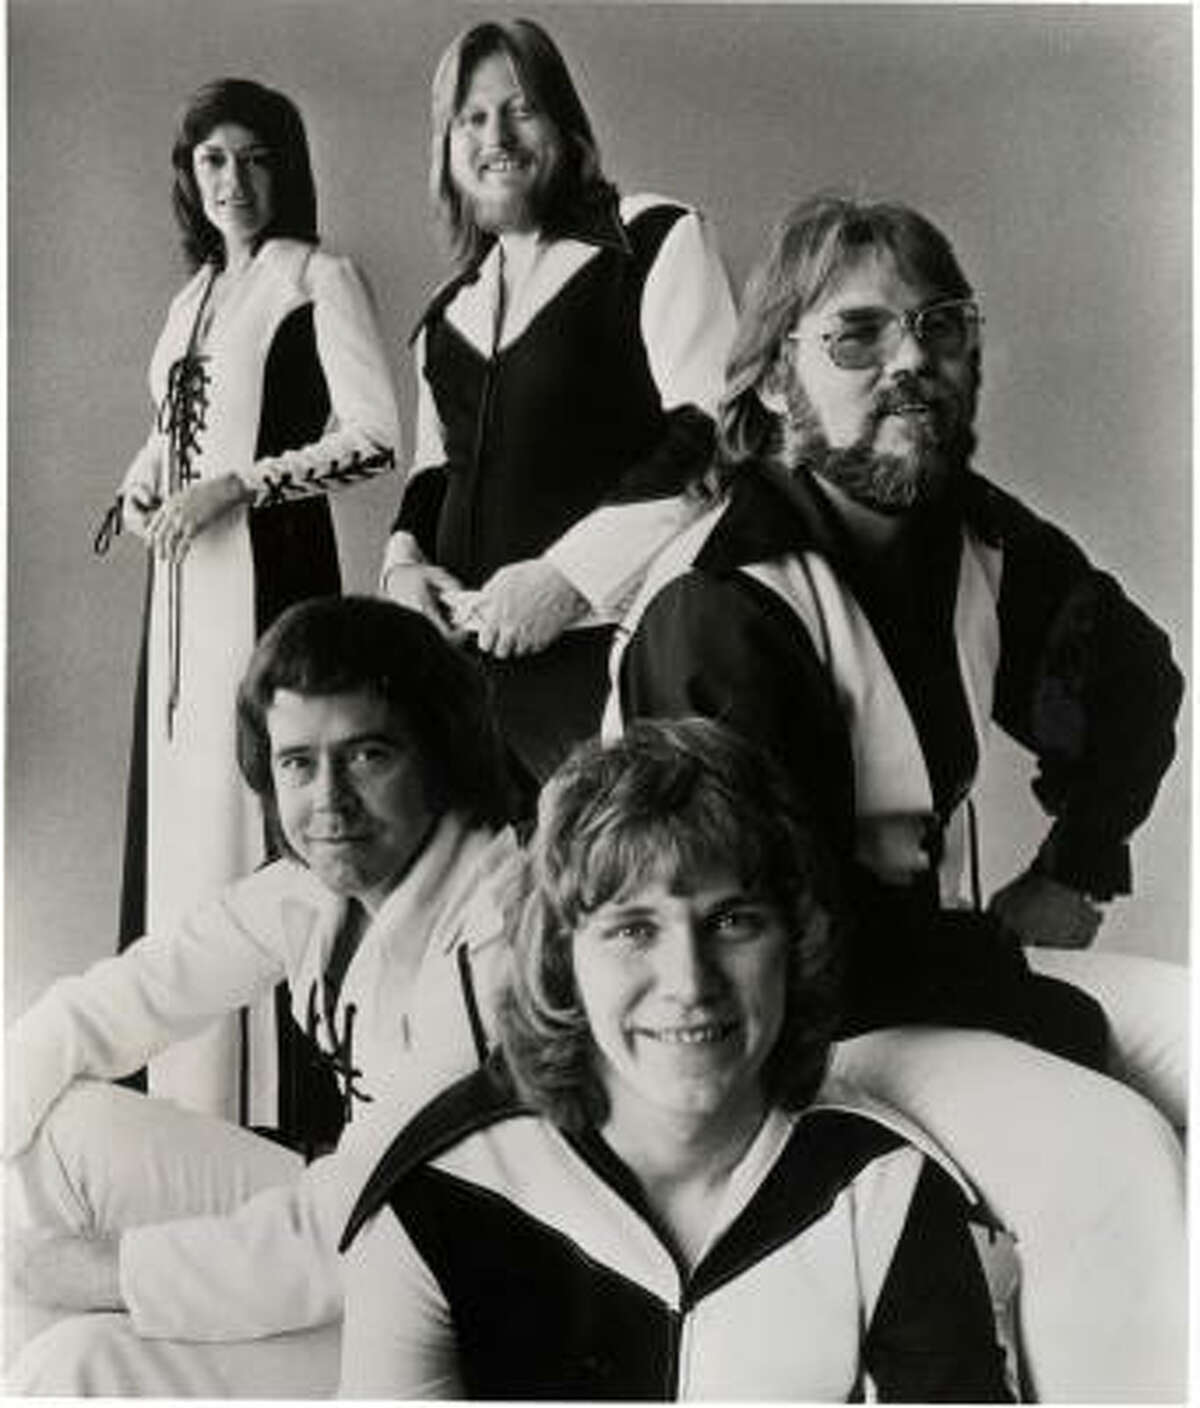 Jones, center back, worked the drums for Kenny Rogers and The First Edition, featuring, from left, Thelma Camacho, Mike Settle, Terry Williams and Rogers.